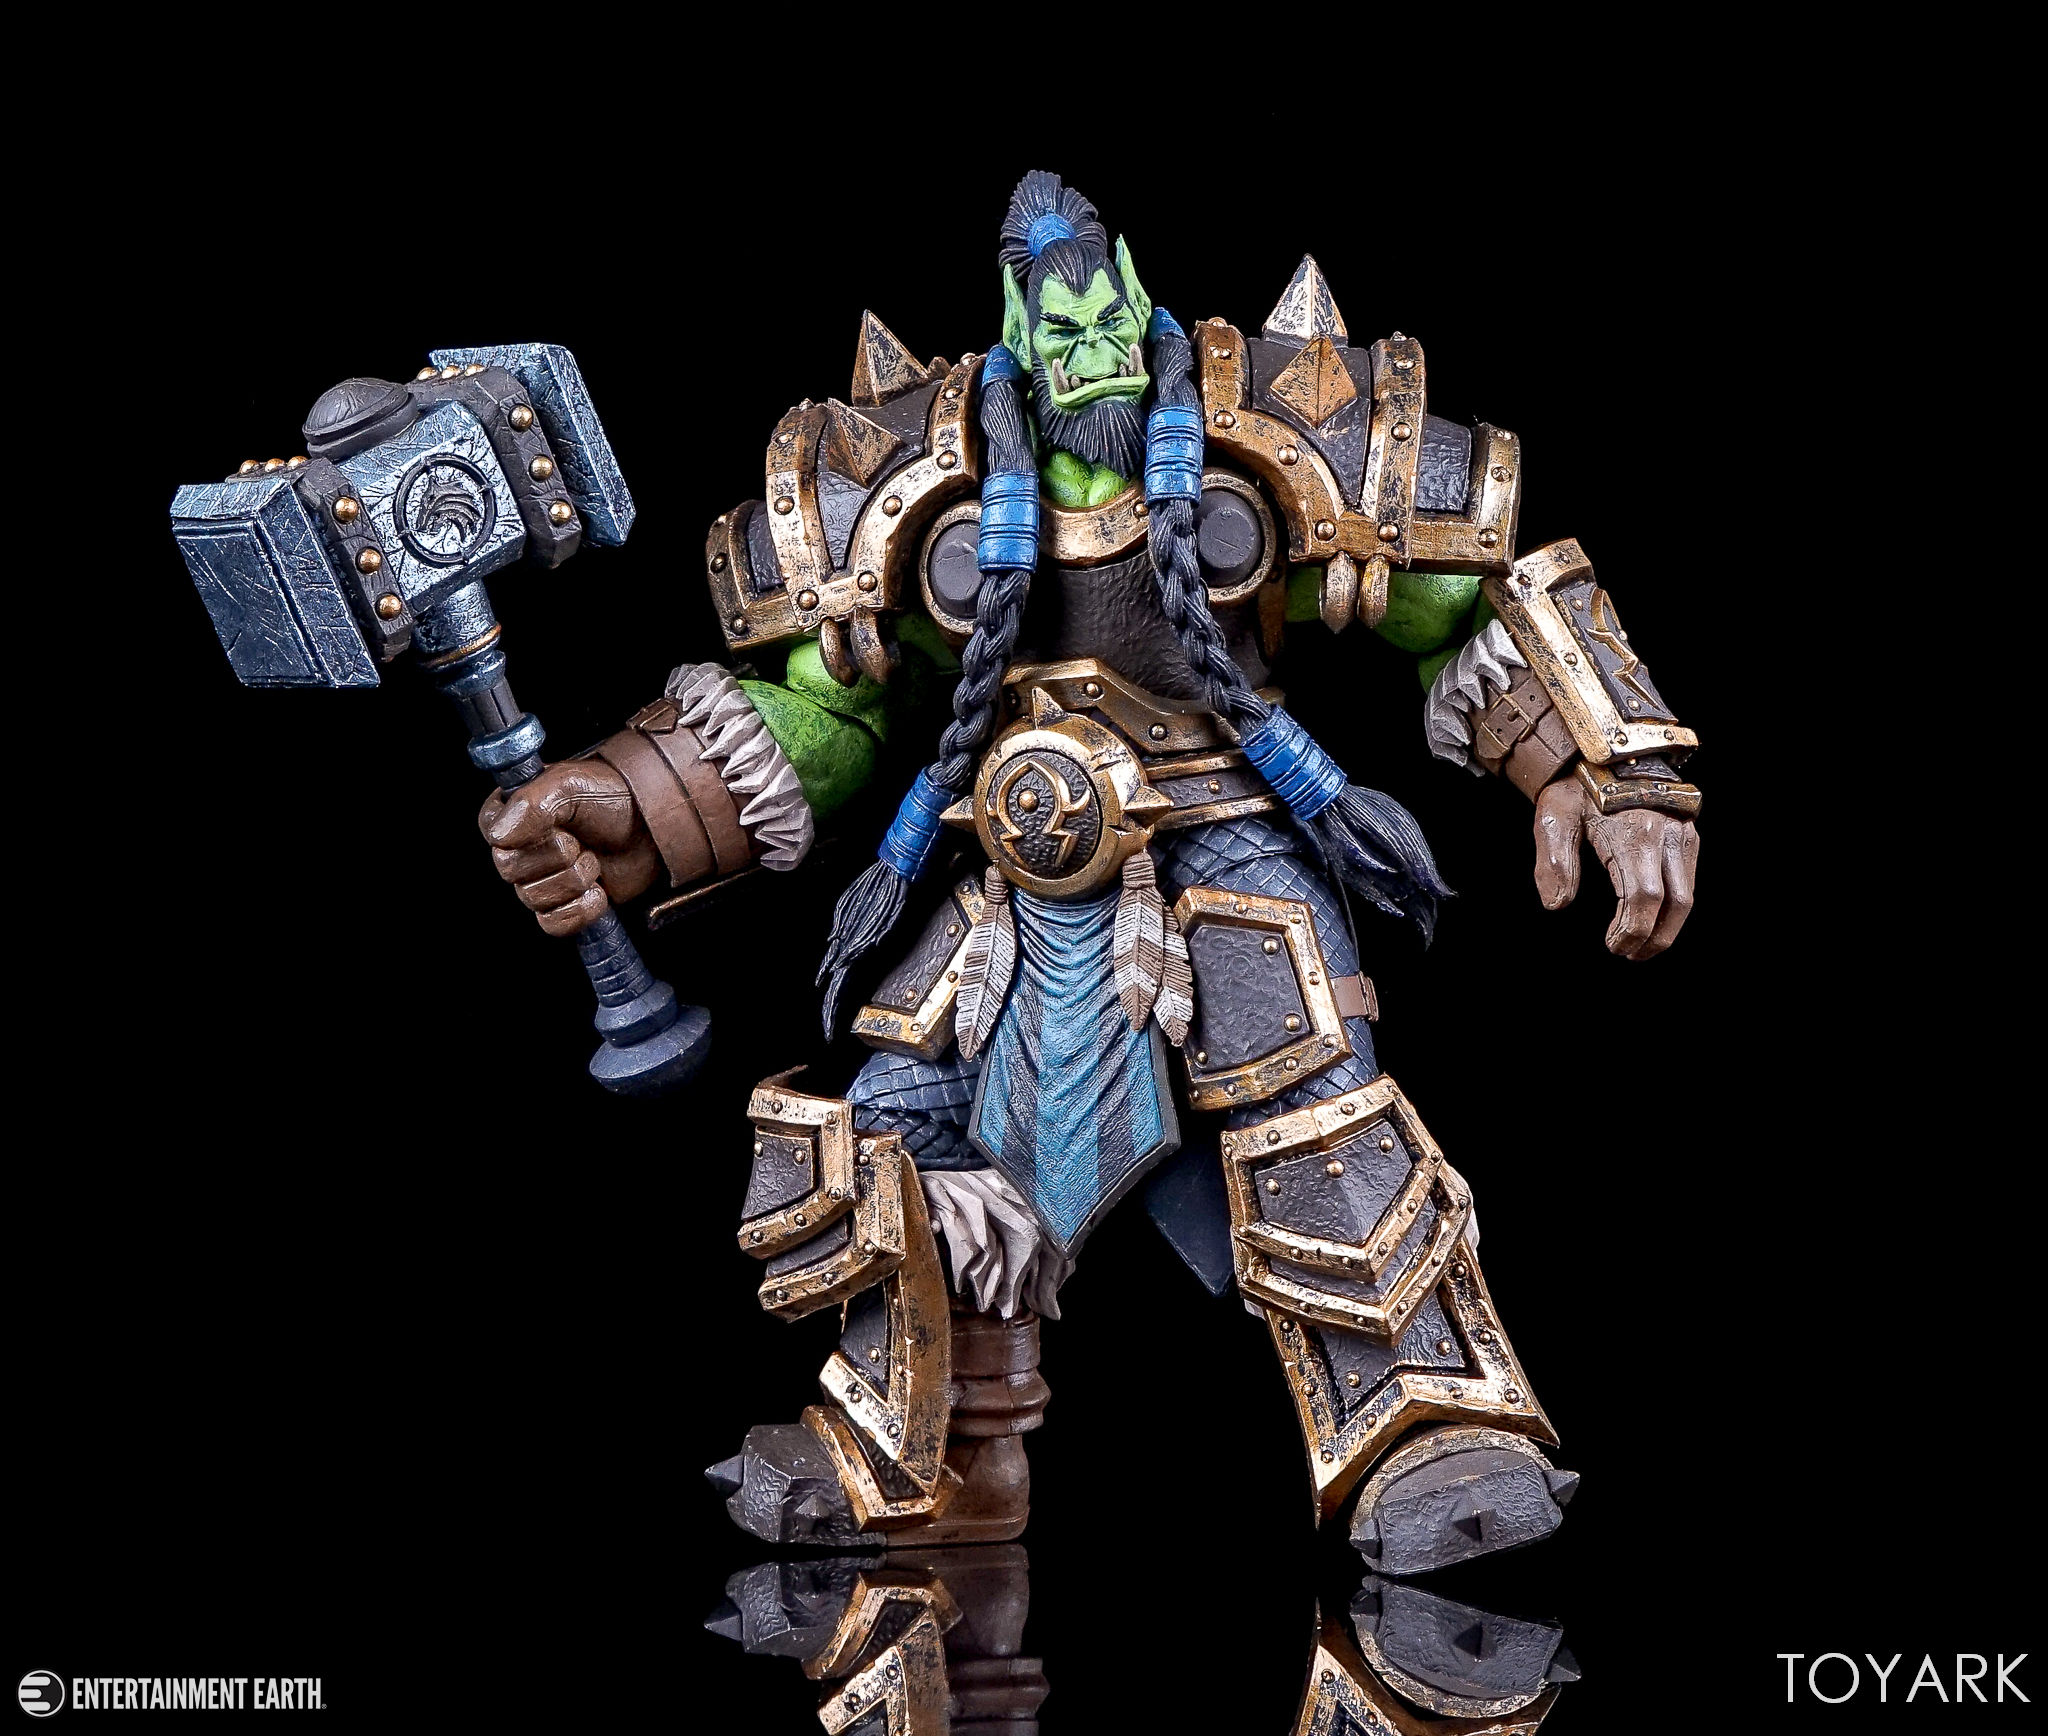 http://news.toyark.com/wp-content/uploads/sites/4/2017/08/NECA-Heroes-of-the-Storm-Thrall-003.jpg